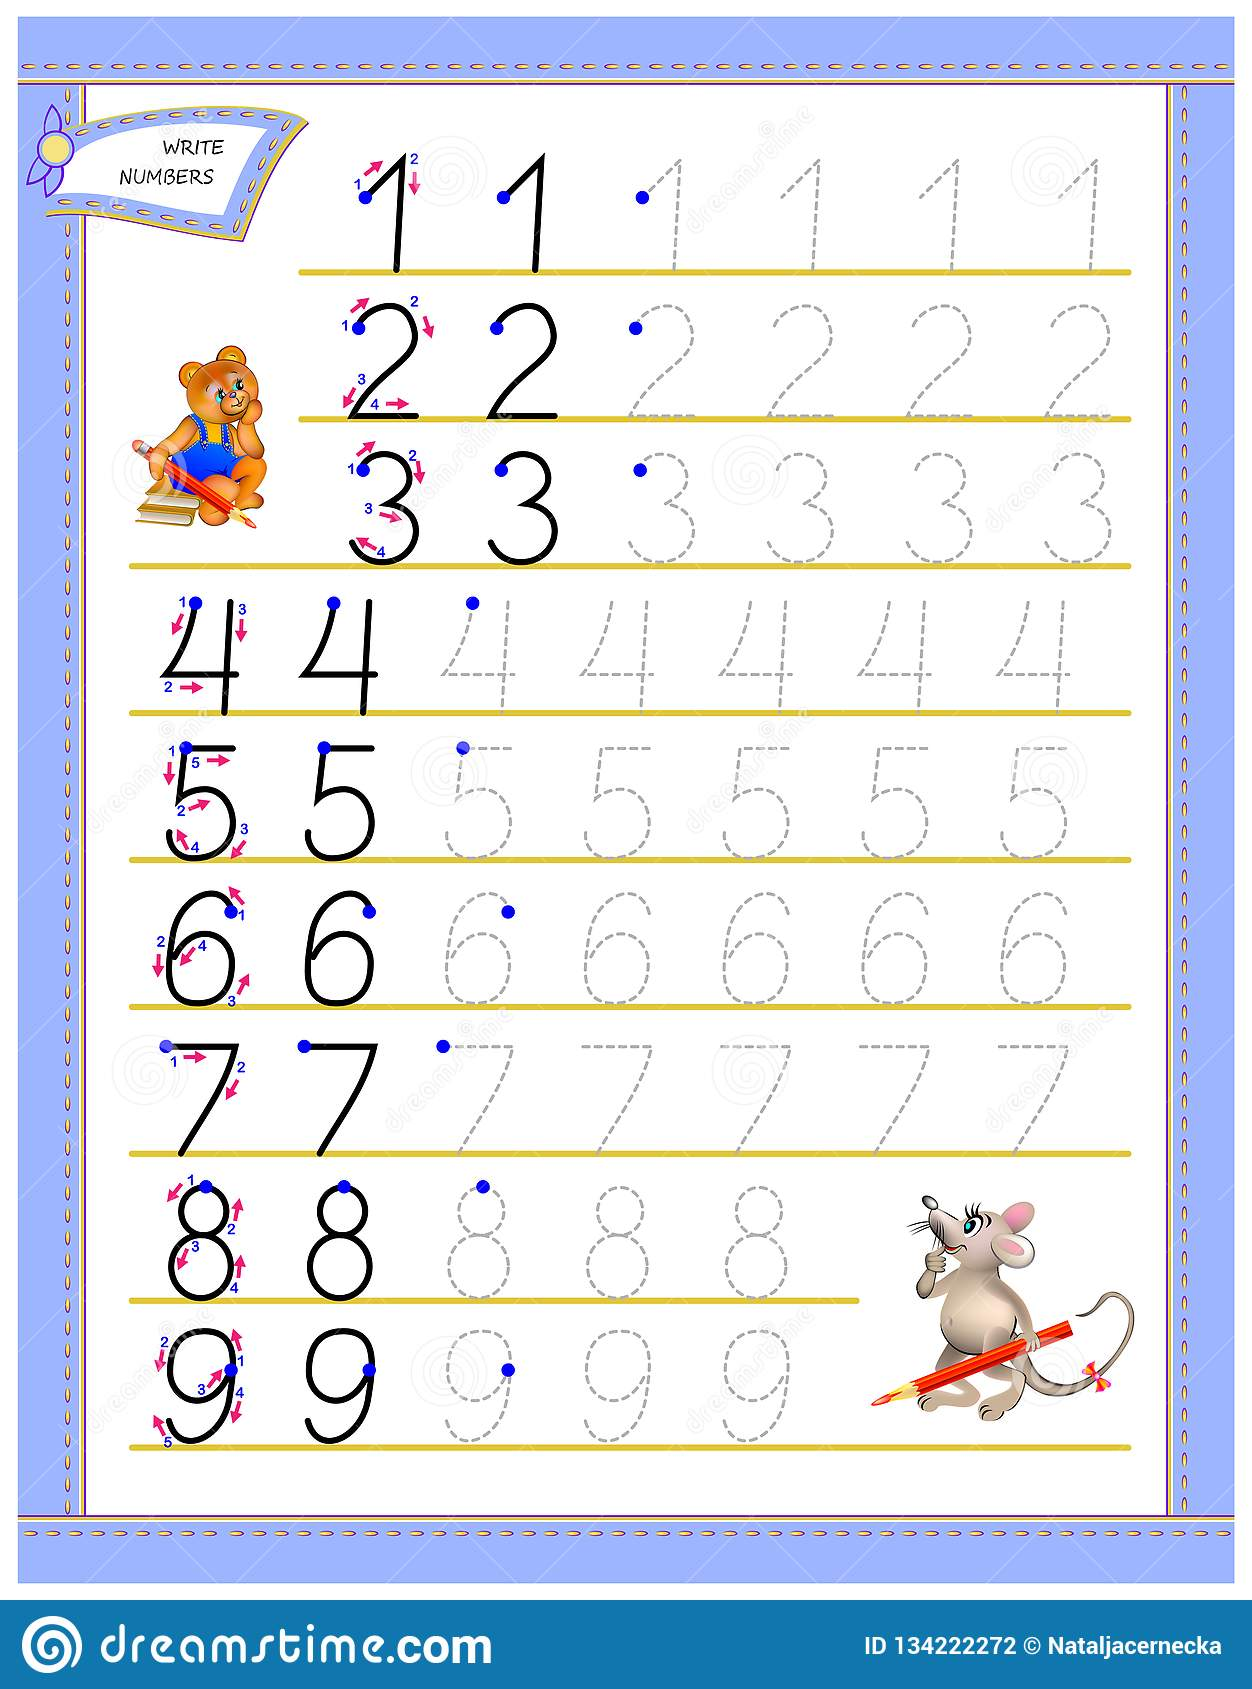 Educational Page For Children To Study Writing Numbers Worksheet For Kids Textbook Developing